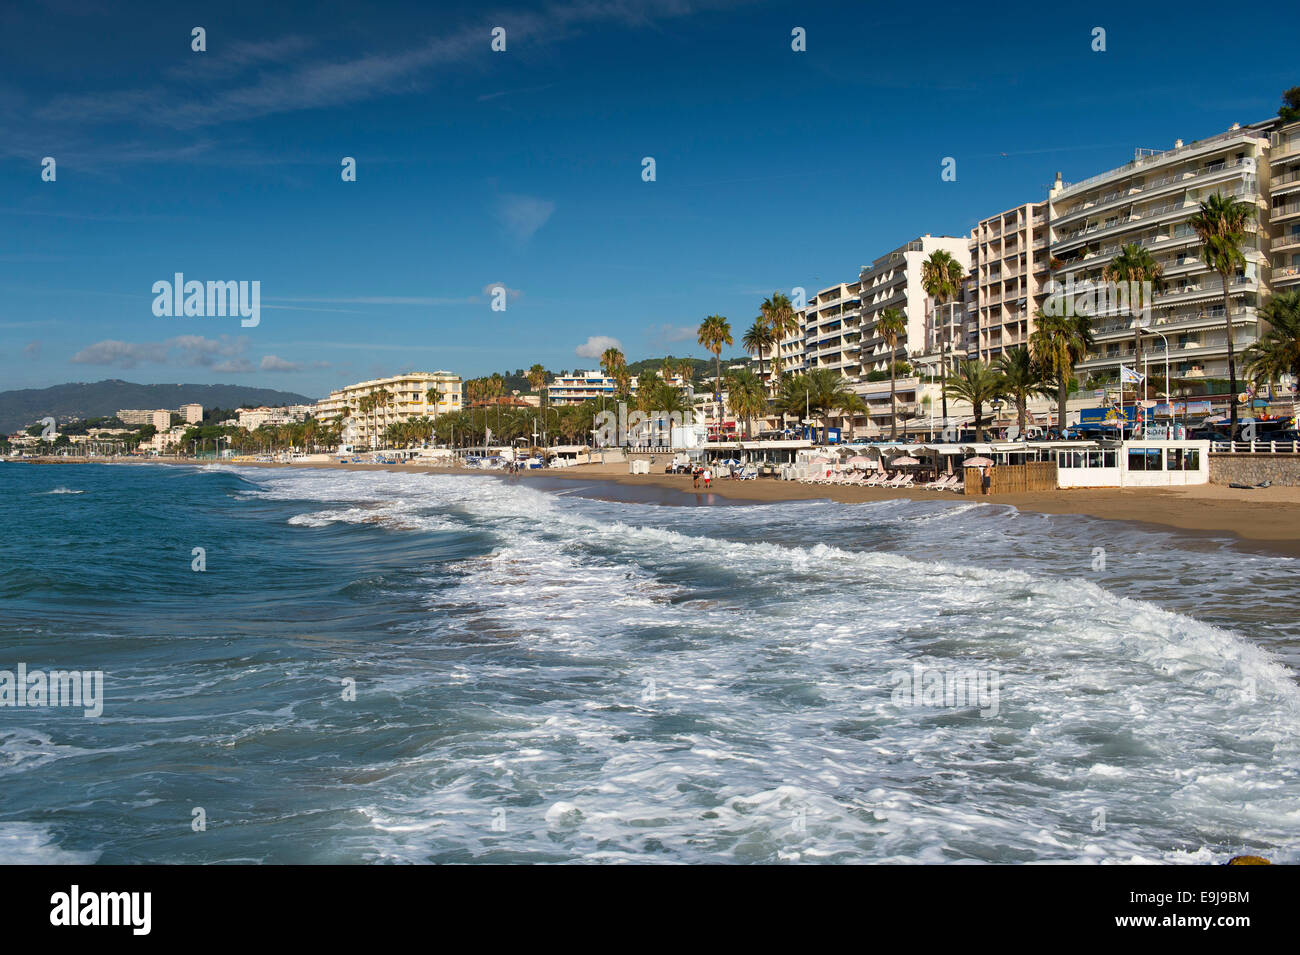 The main beach in Cannes, South of France, off the La Croisette road. - Stock Image